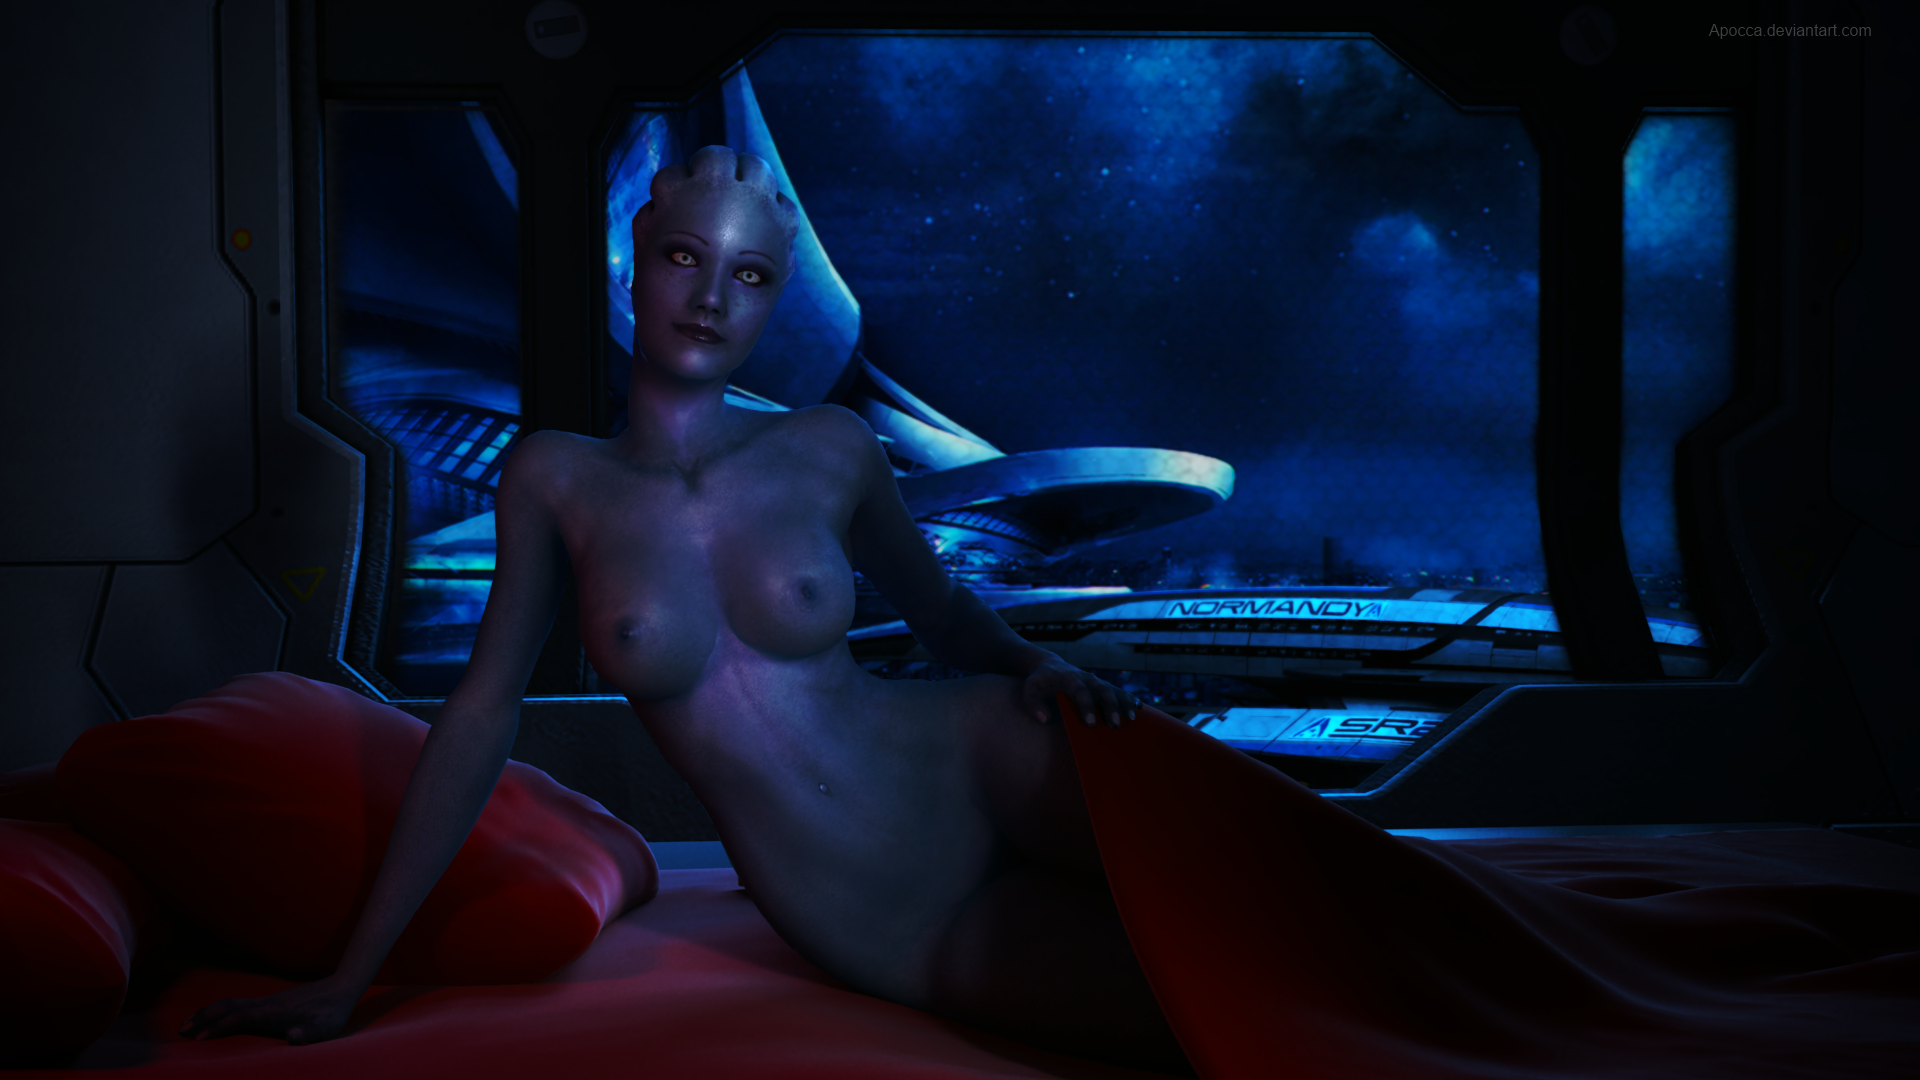 Naked pictures of liara in mass effect cartoon pictures